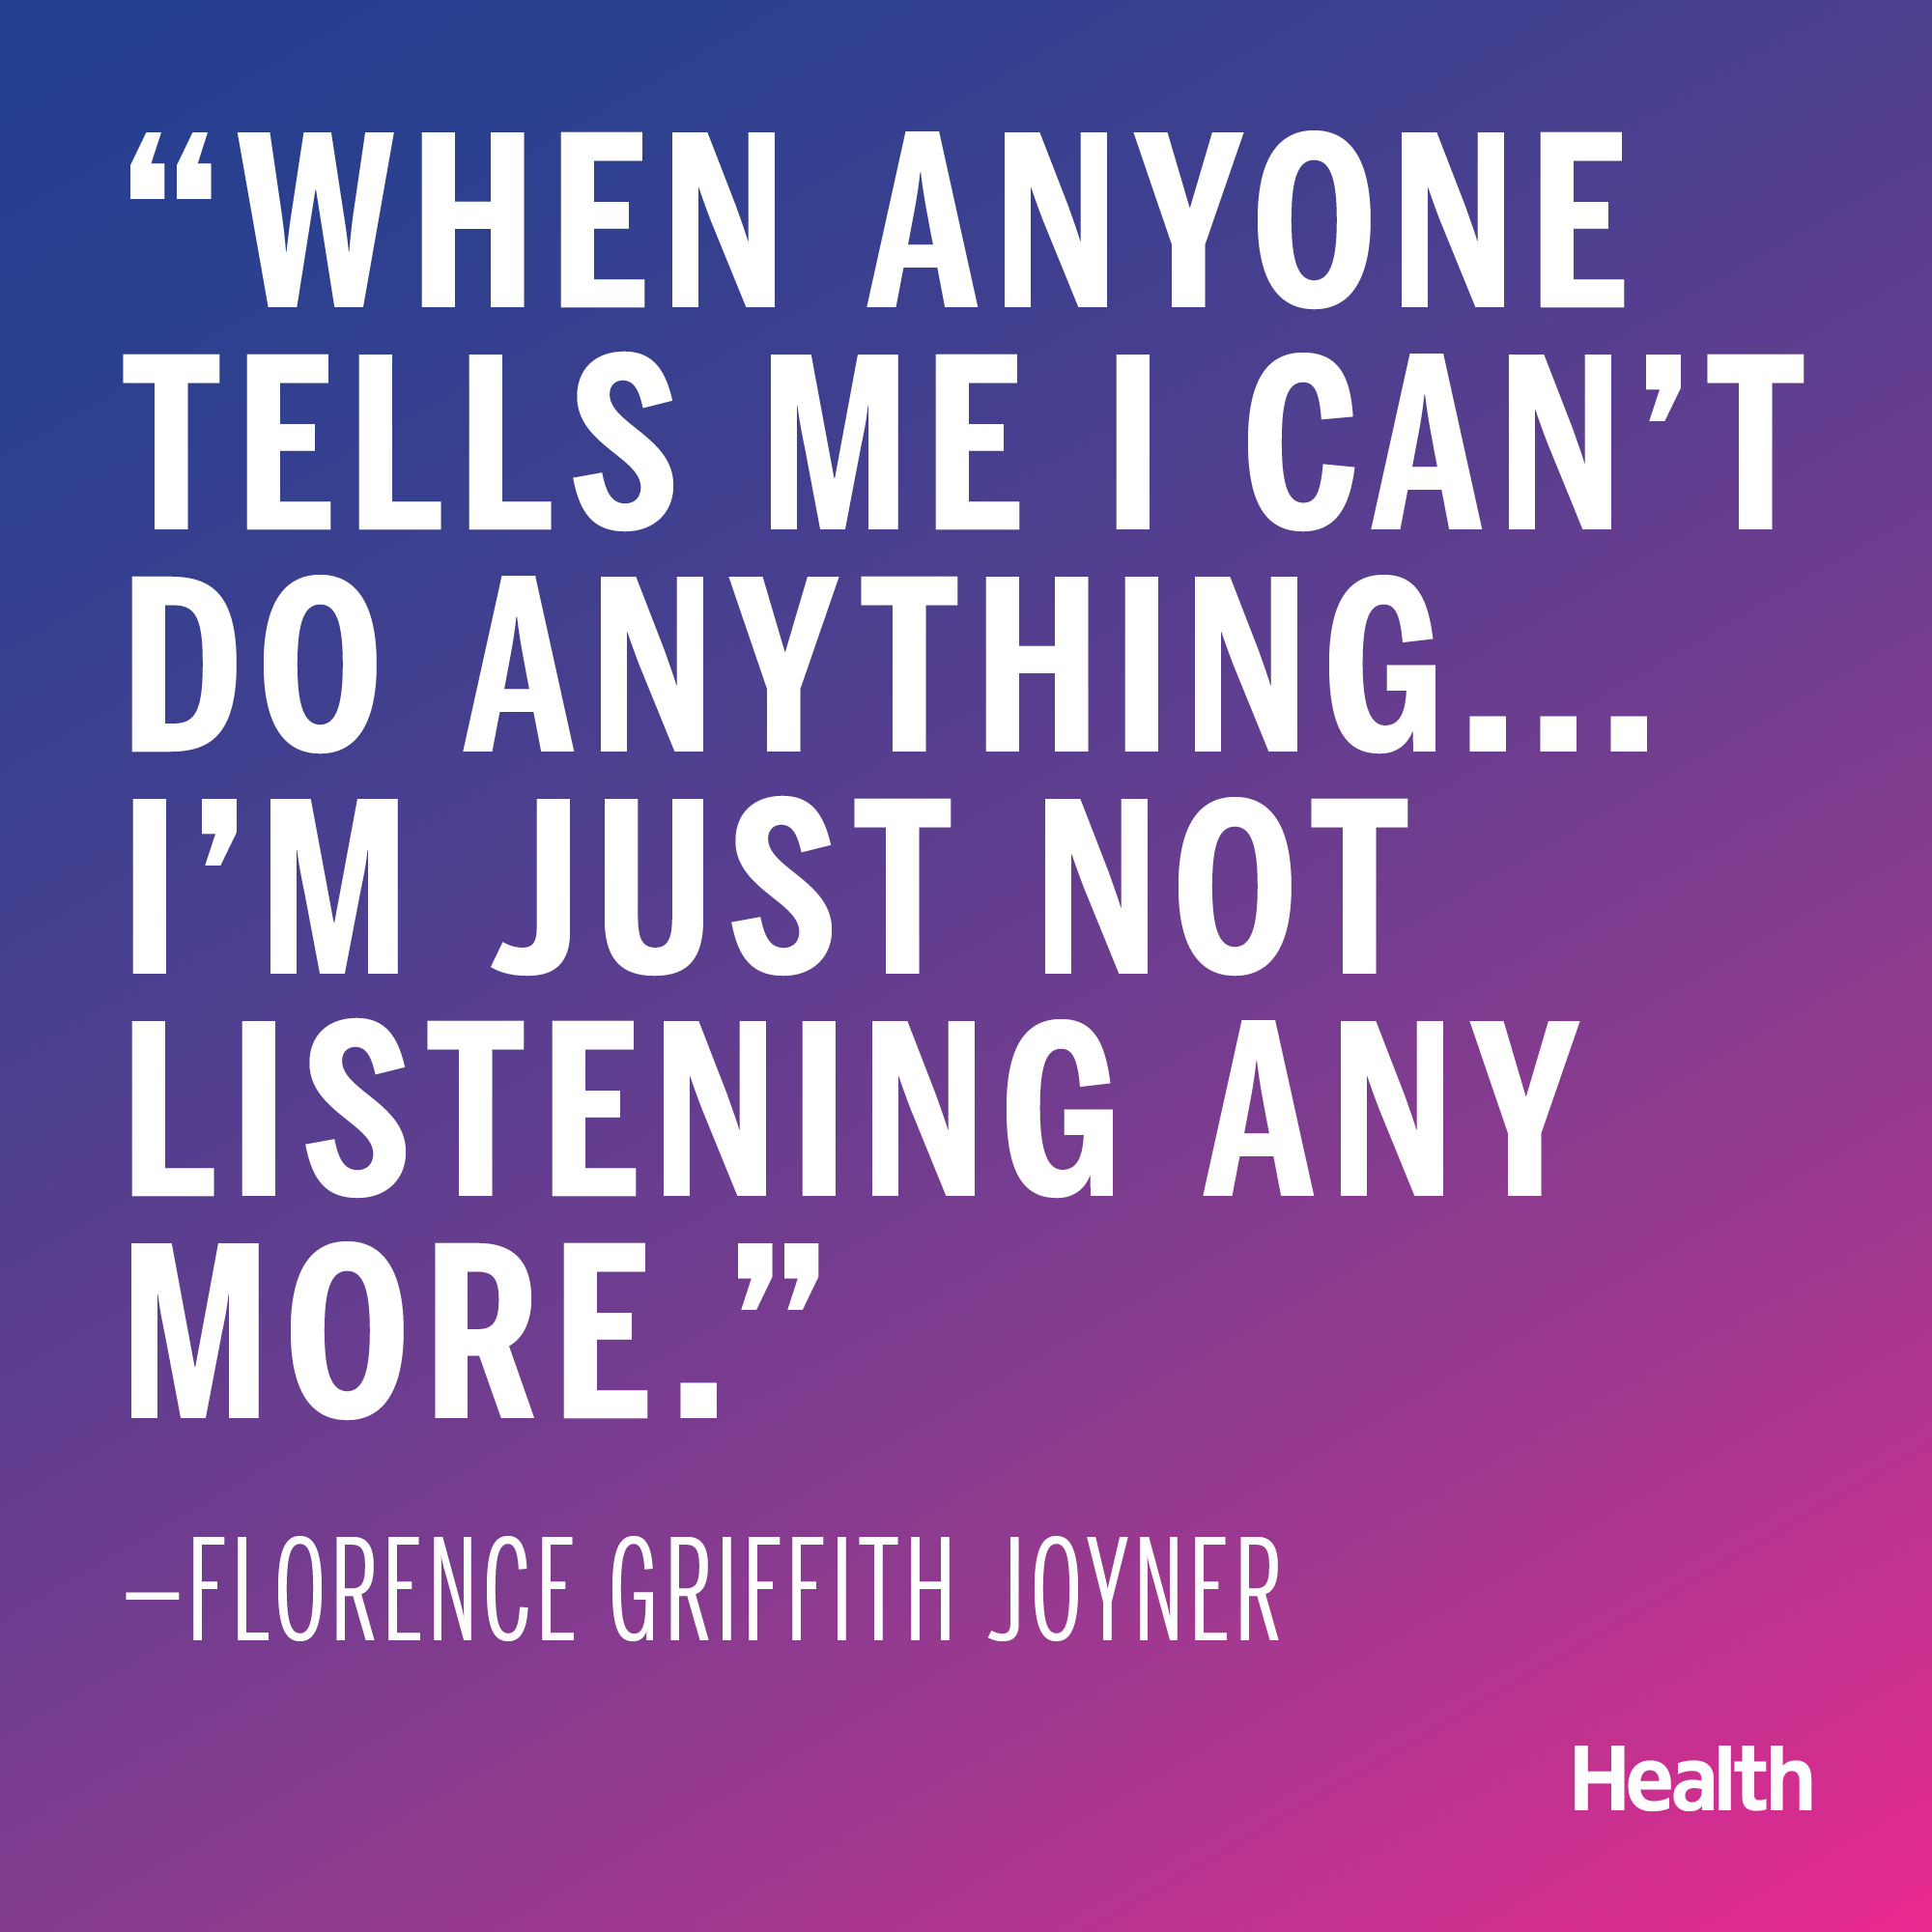 florence-griffith-joyner-inspirational-quote